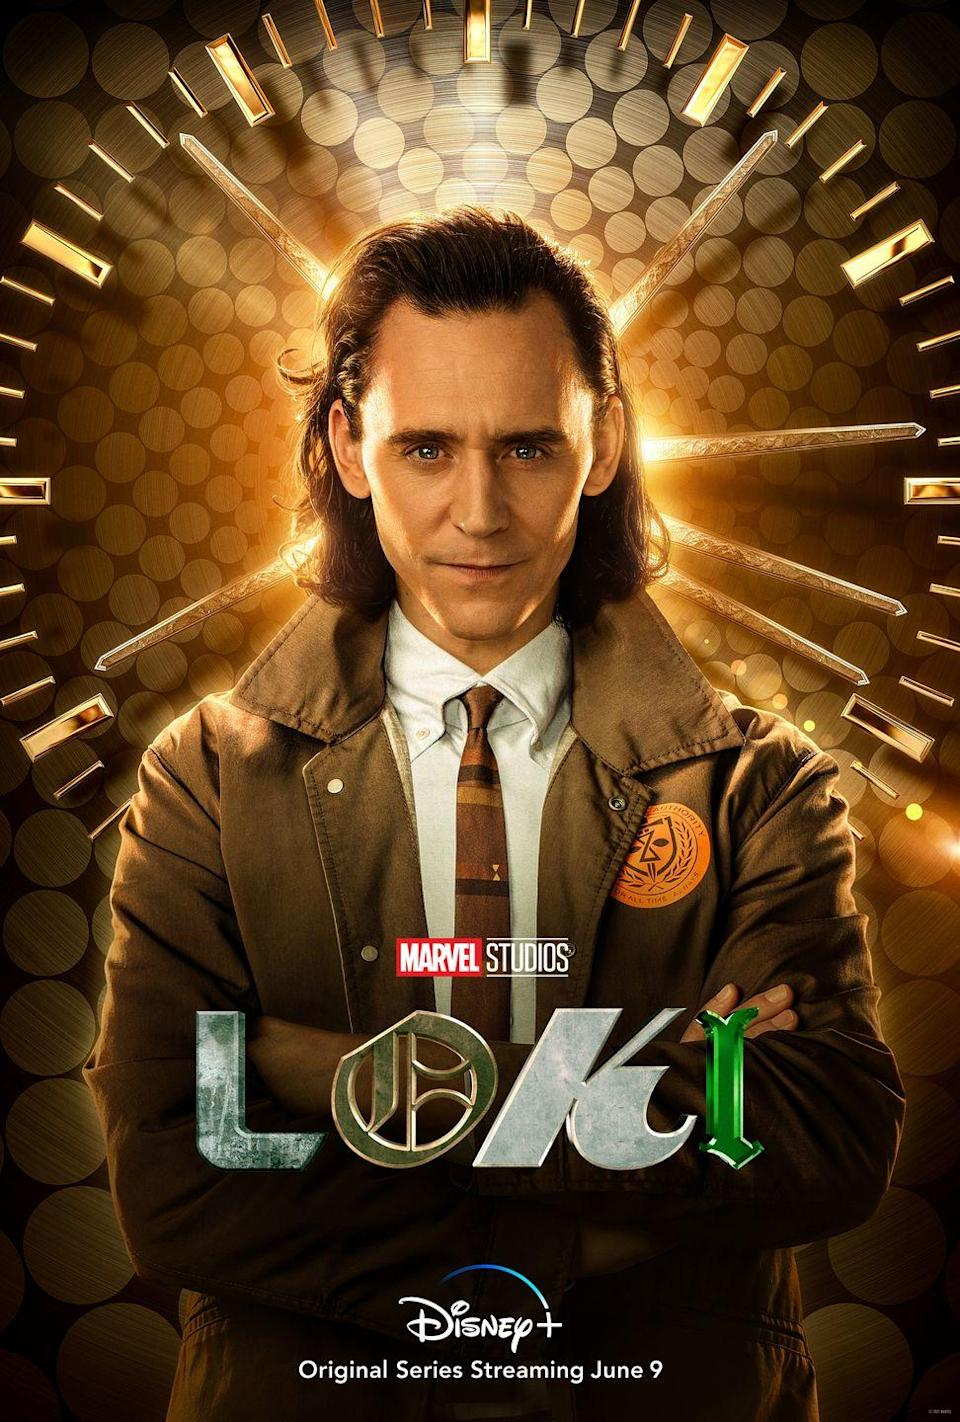 """<p><strong>Portrays:</strong> Loki</p><p><strong>Age:</strong> 40</p><p><strong>Instagram:</strong> <a href=""""https://www.instagram.com/twhiddleston/"""" rel=""""nofollow noopener"""" target=""""_blank"""" data-ylk=""""slk:@twhiddleston"""" class=""""link rapid-noclick-resp"""">@twhiddleston</a></p><p><strong>Fun fact: </strong>Um, Marvel fans...do I even have to give you background on this extremely handsome fella? If yes, then go watch all the MCU films right now. We won't get upset if you break away to do this. We command you. </p>"""